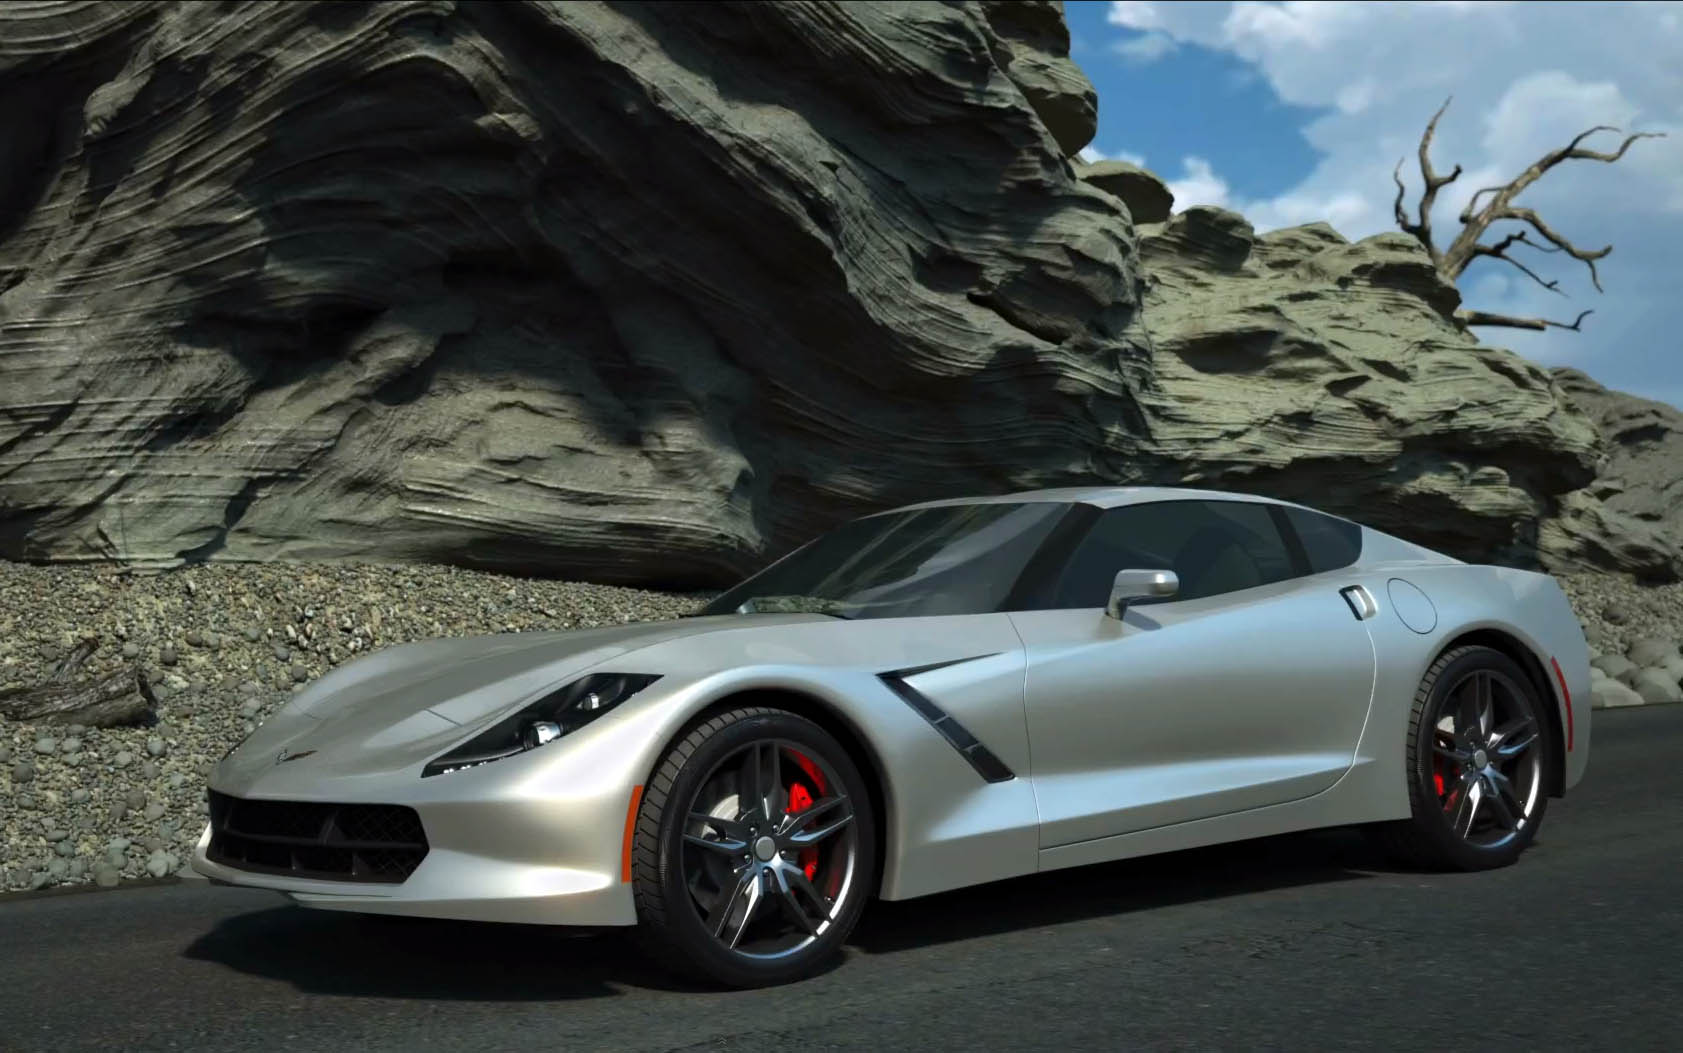 2014 2014 chevrolet corvette c7 stingray review specs and price 2014. Cars Review. Best American Auto & Cars Review